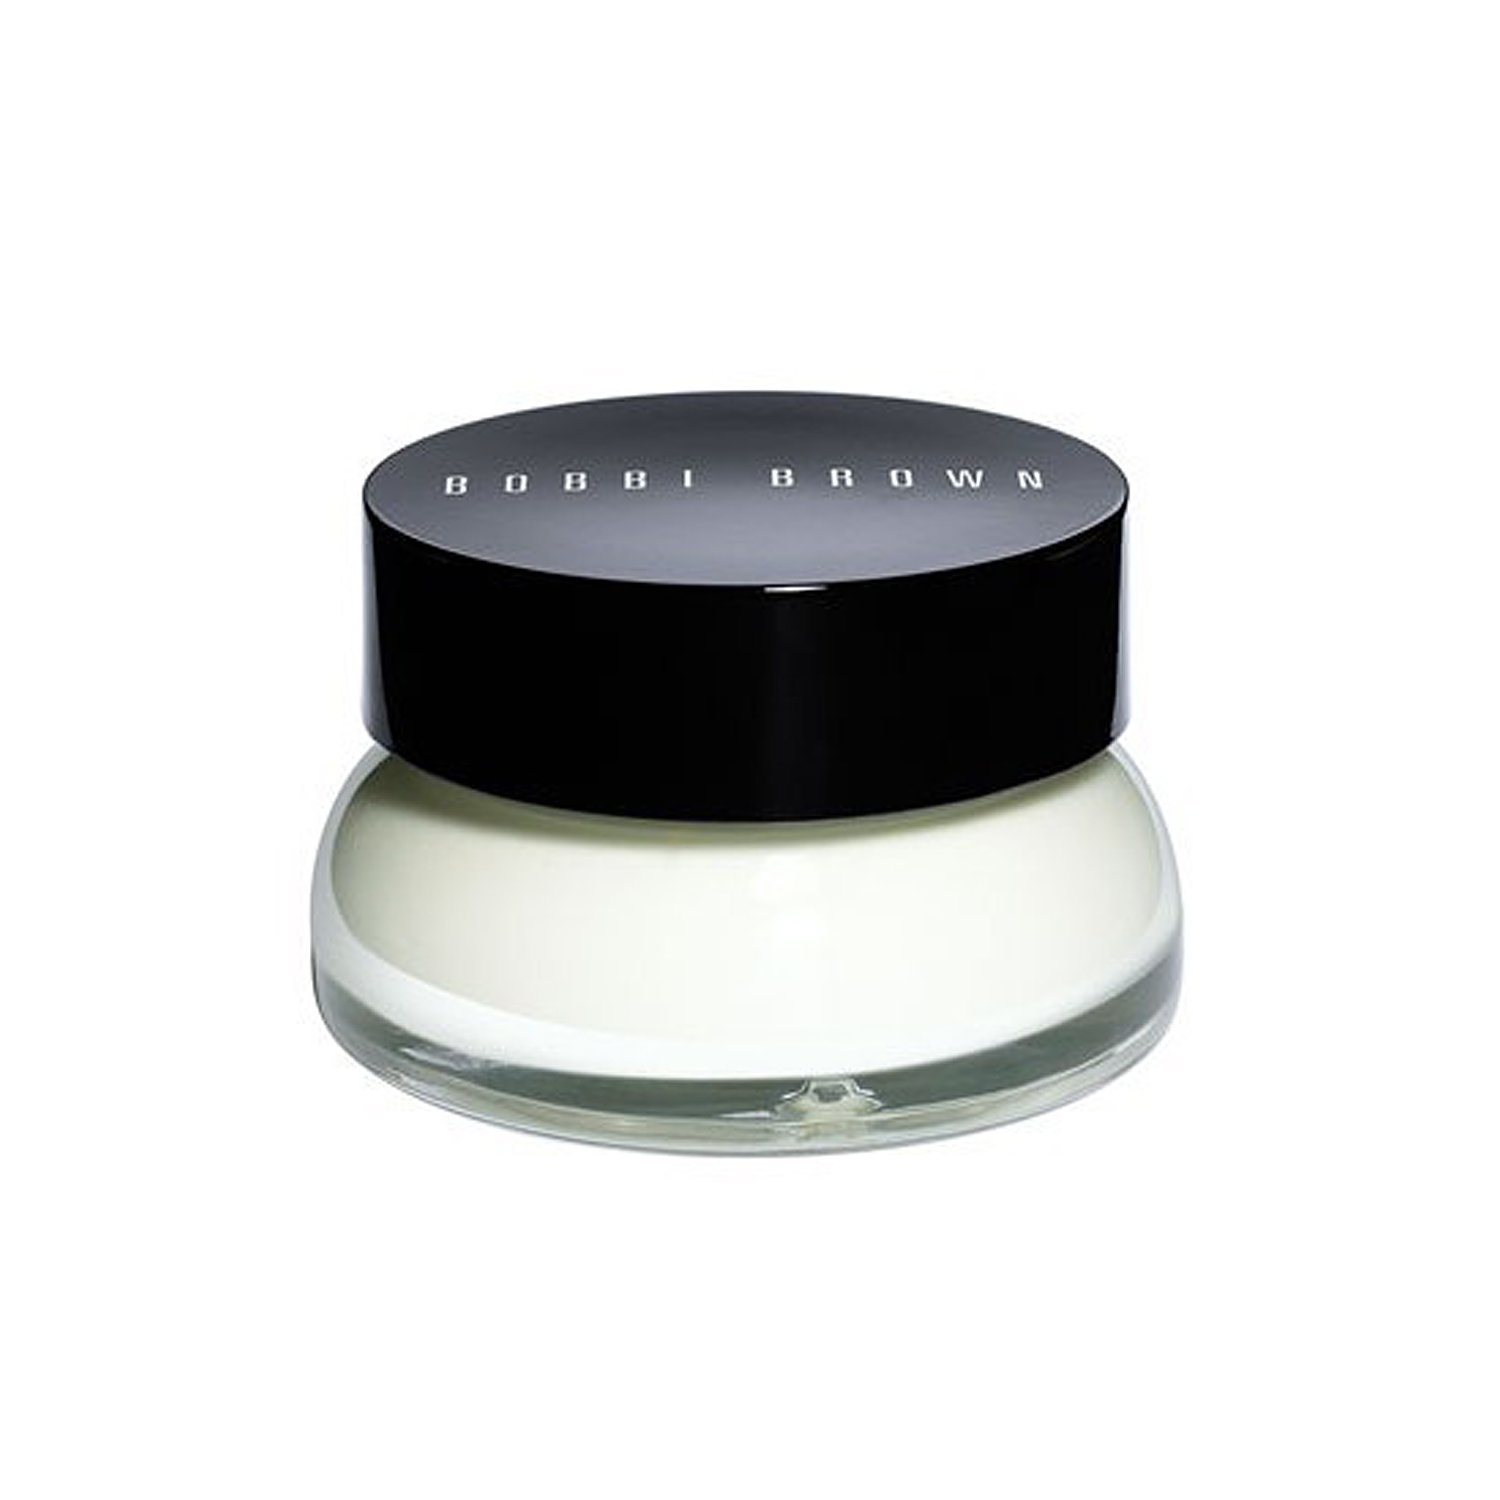 Bobbi Brown Extra Repair Moisturizing Balm for Women, 1.7 Ounce